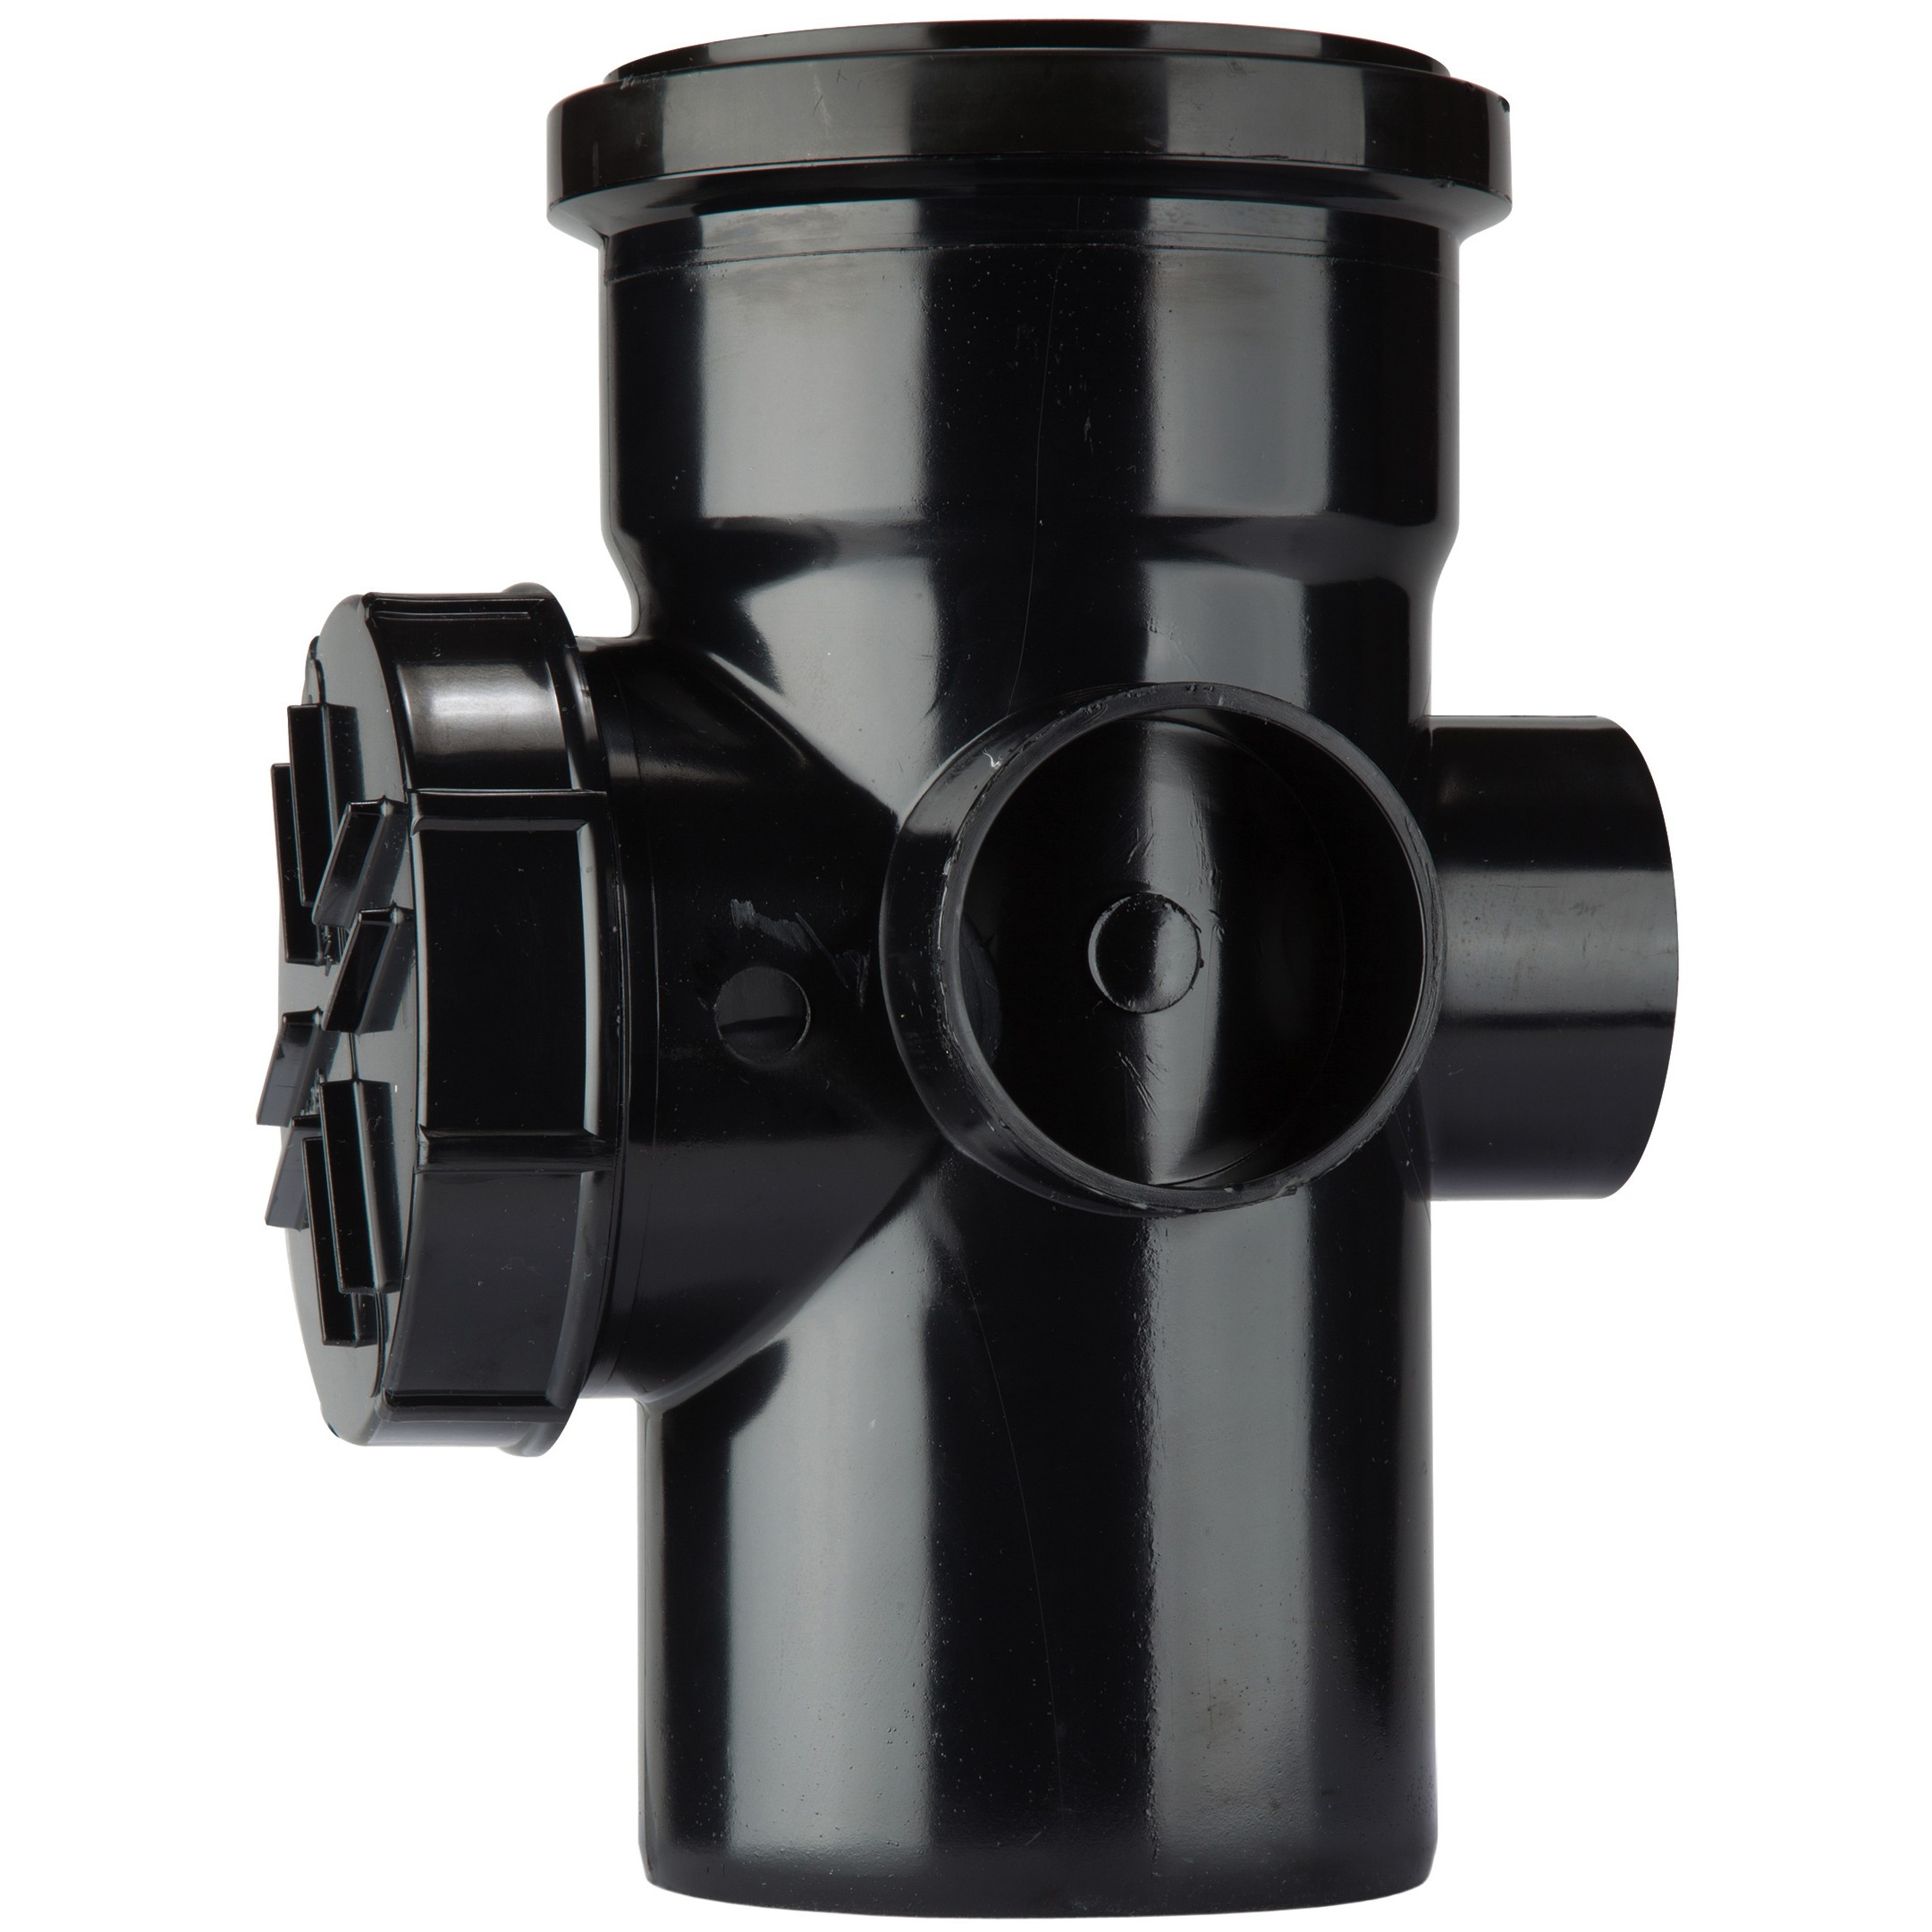 Polypipe 110mm Soil Single Socket Access Pipe - Black